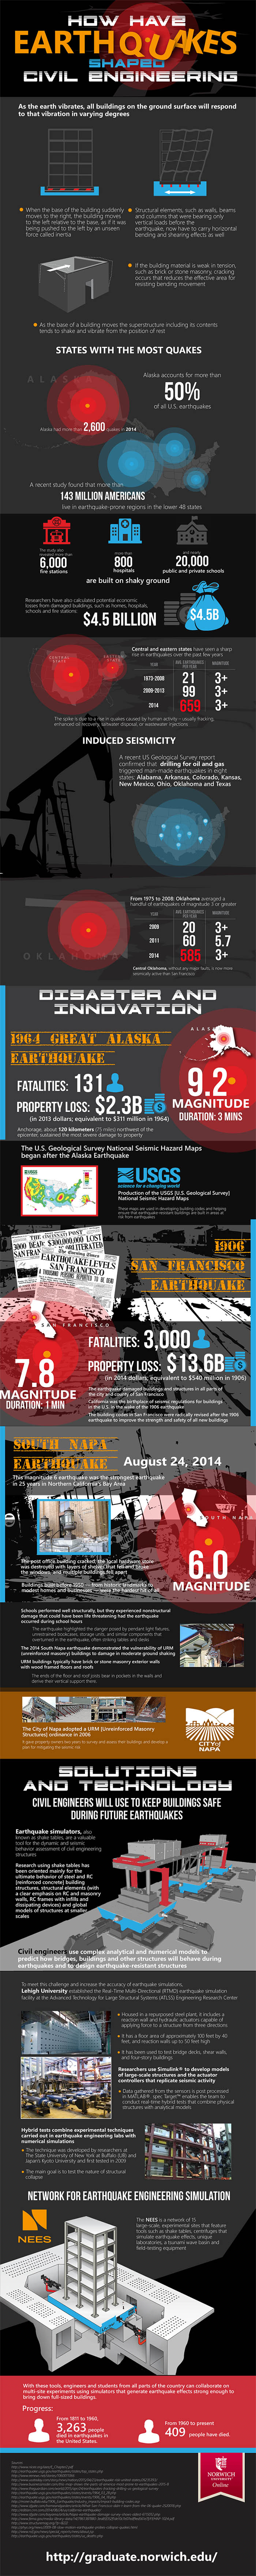 Norwich University, earthquakes architecture, earthquake proof architecture, earthquake engineering, earthquake proof engineering, how earthquakes have changed civil engineering, infographics,